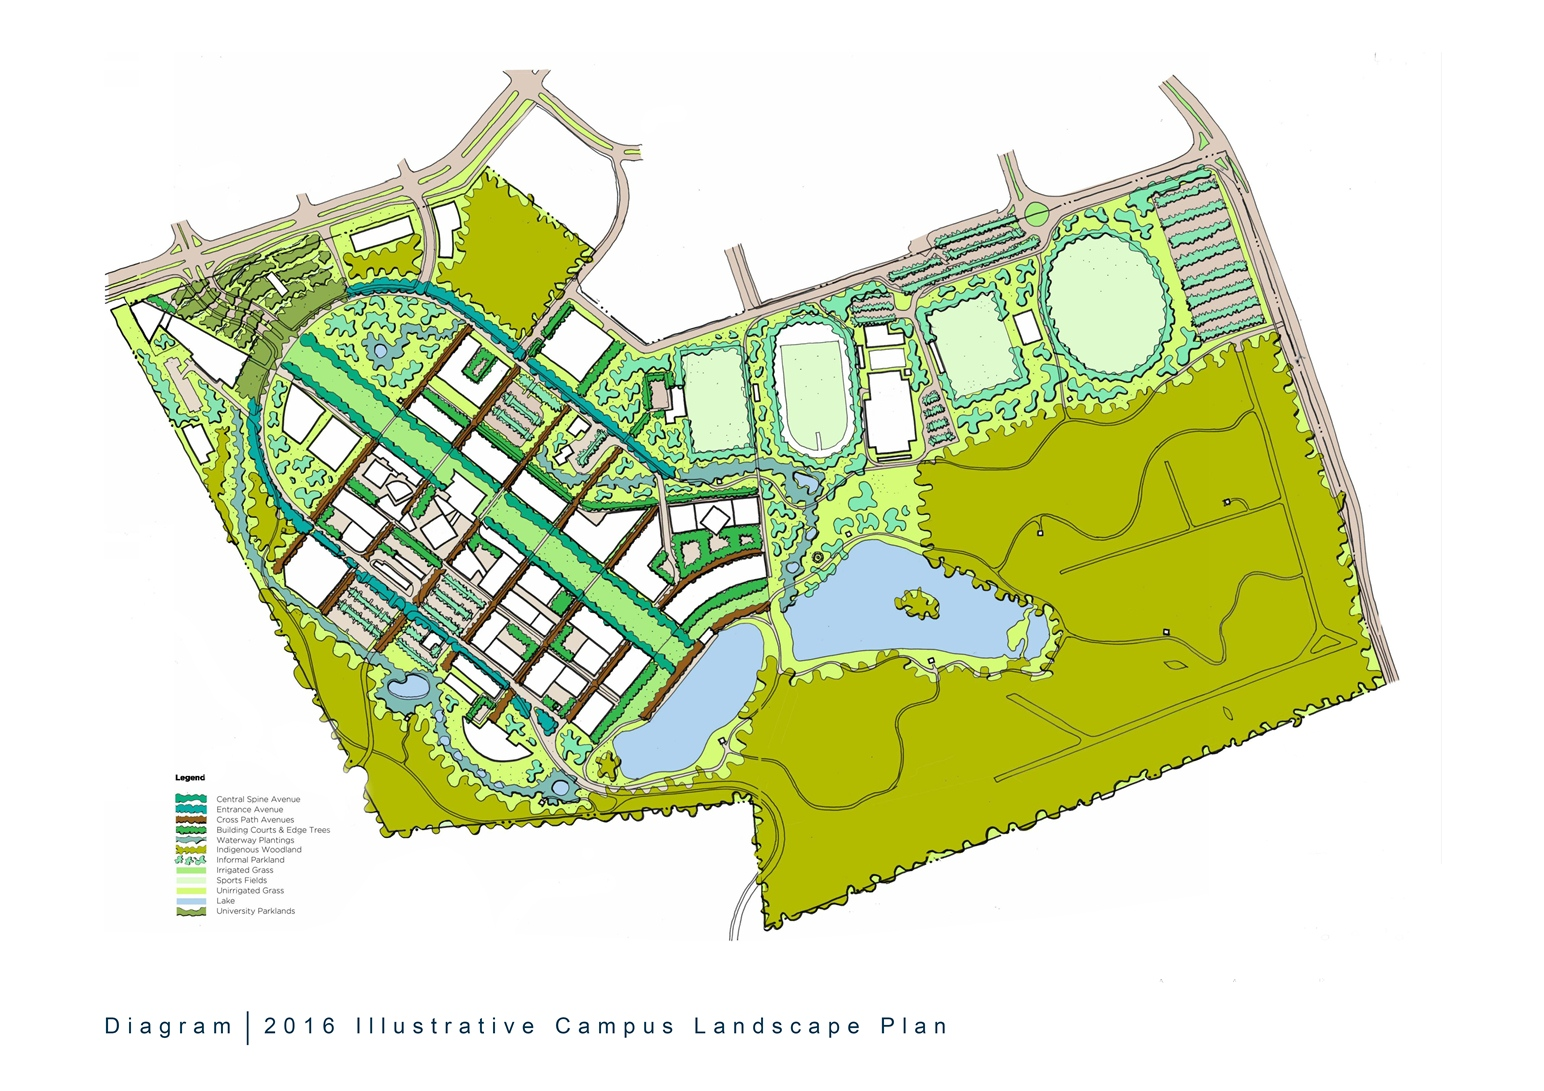 Parkland Campus Map.Diagrams And Imagery Campus Master Plan 2012 University Of The